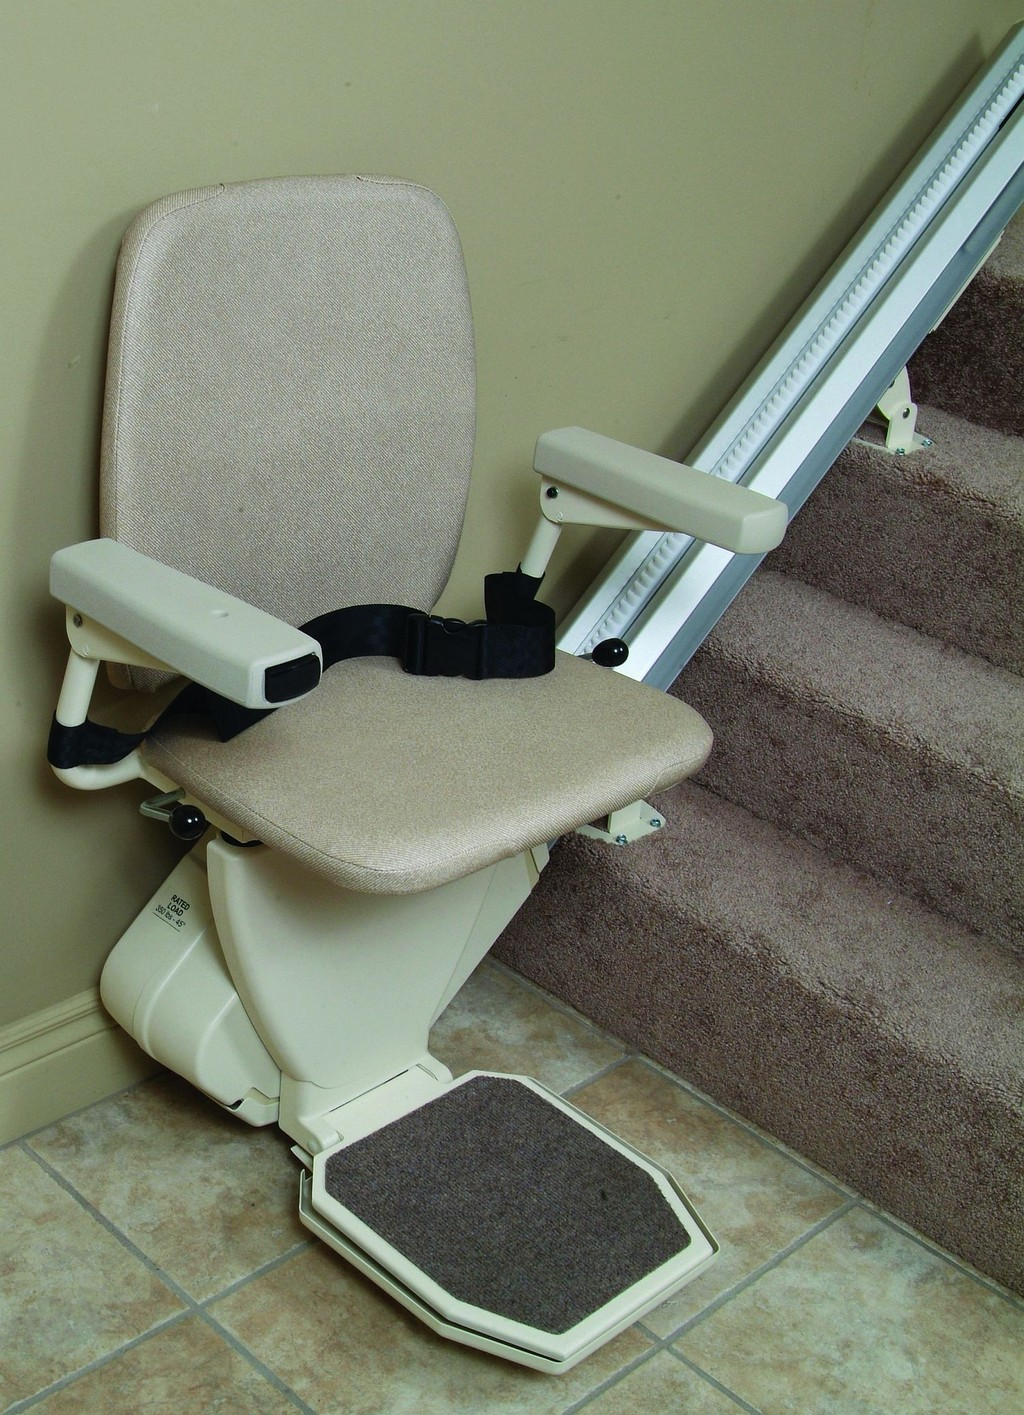 curved stairlift, acorn stair lifts, acorn stairlifts prices, cost of chair stair lifts